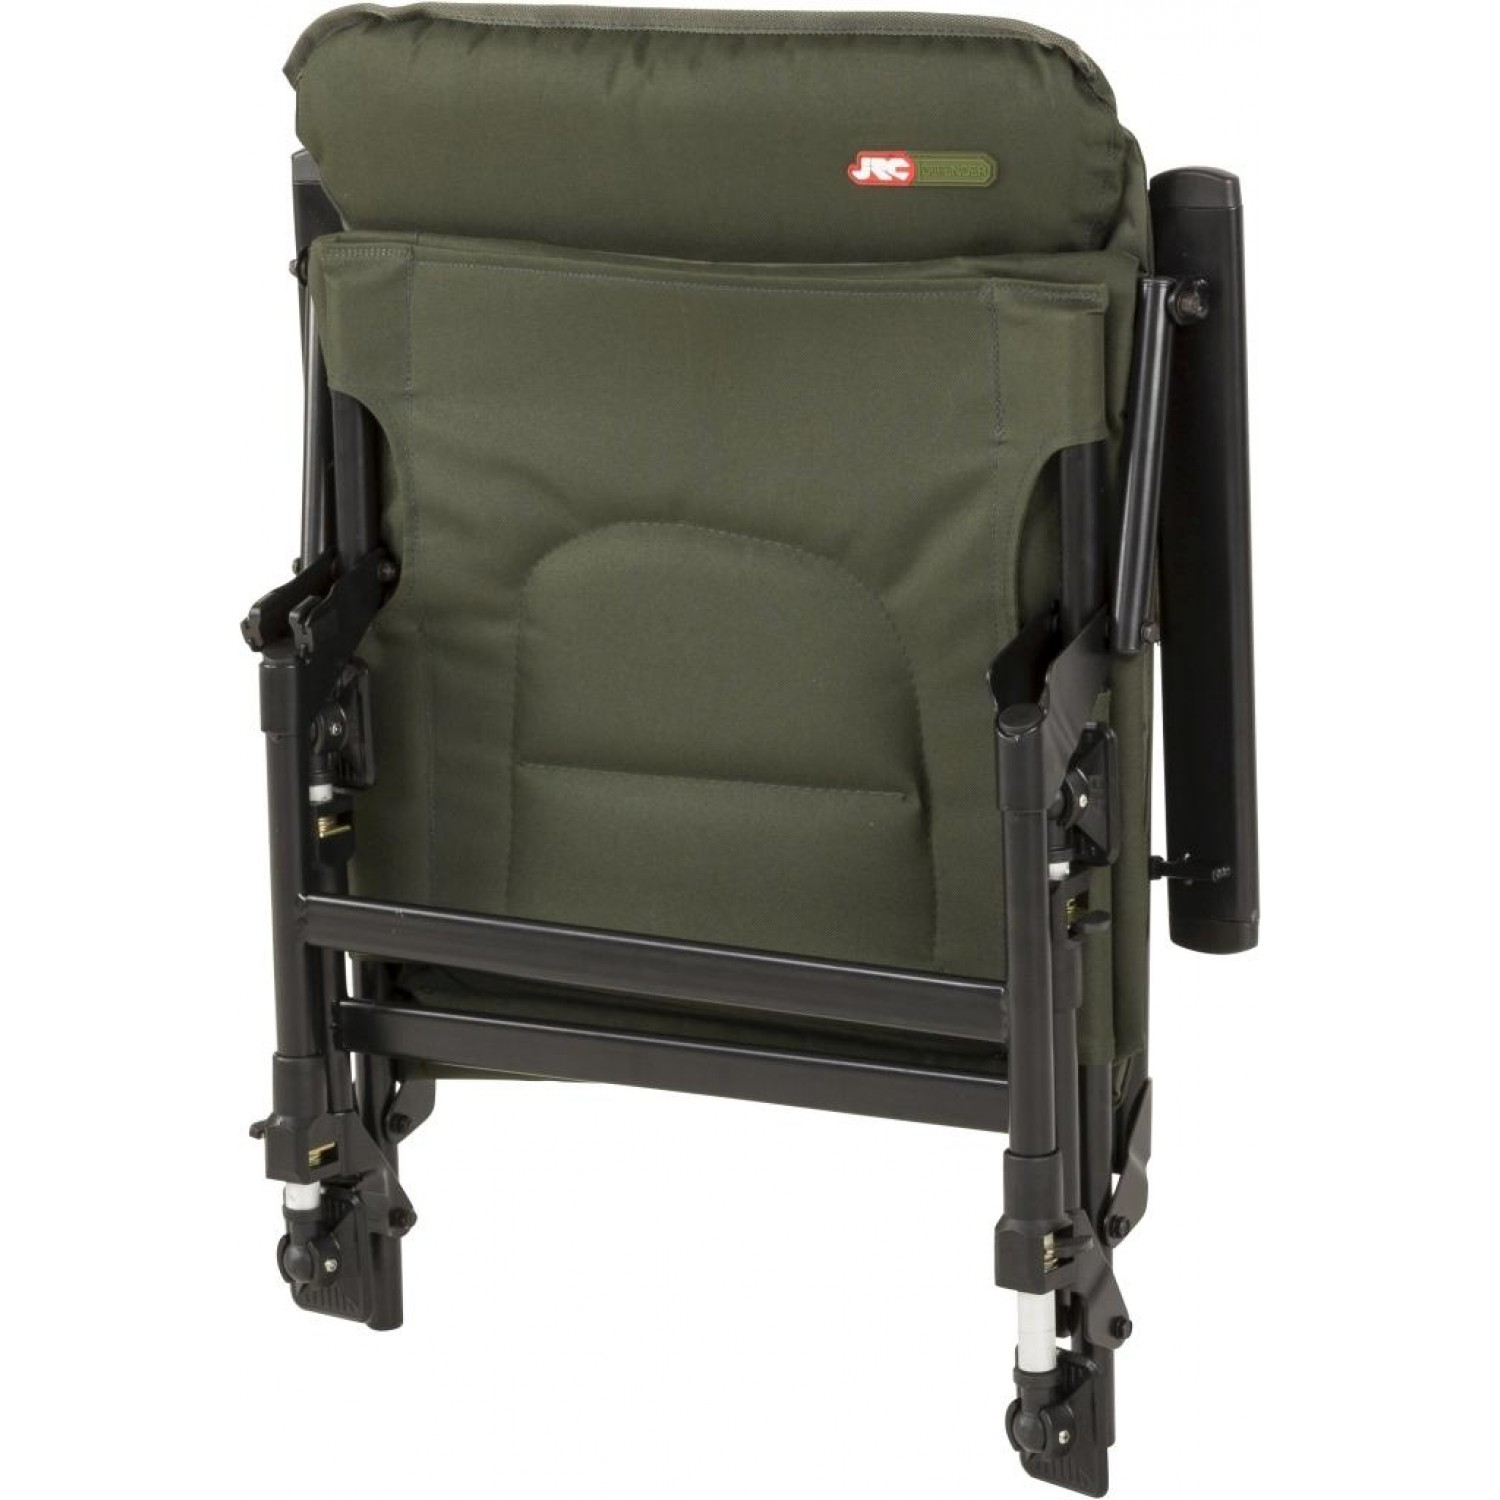 Jrc Defender Arm-Chair